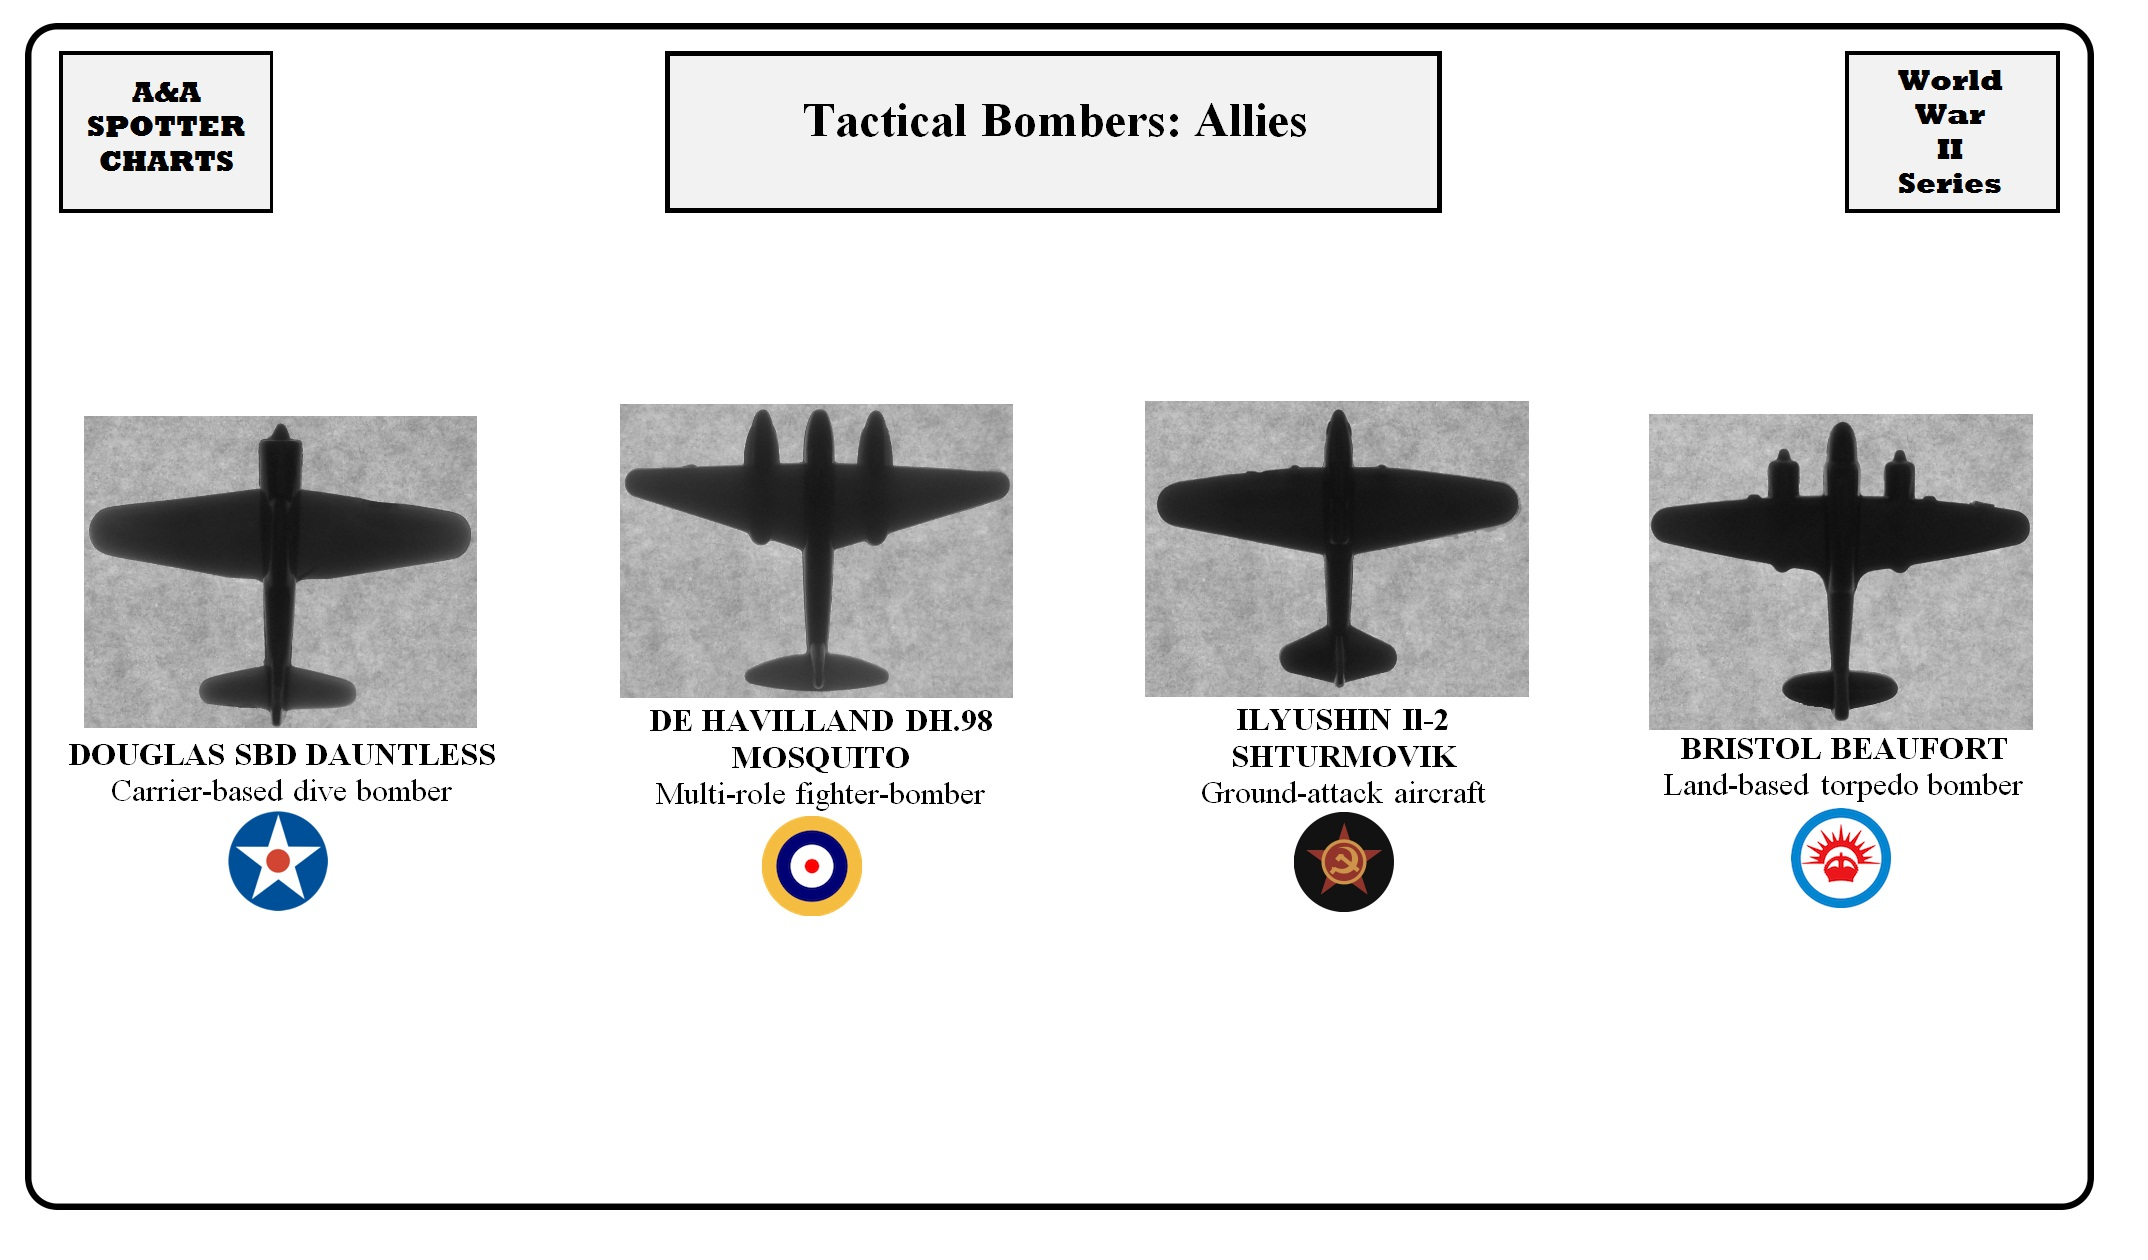 WW2-Air-Tactical Bombers-Allies.jpg